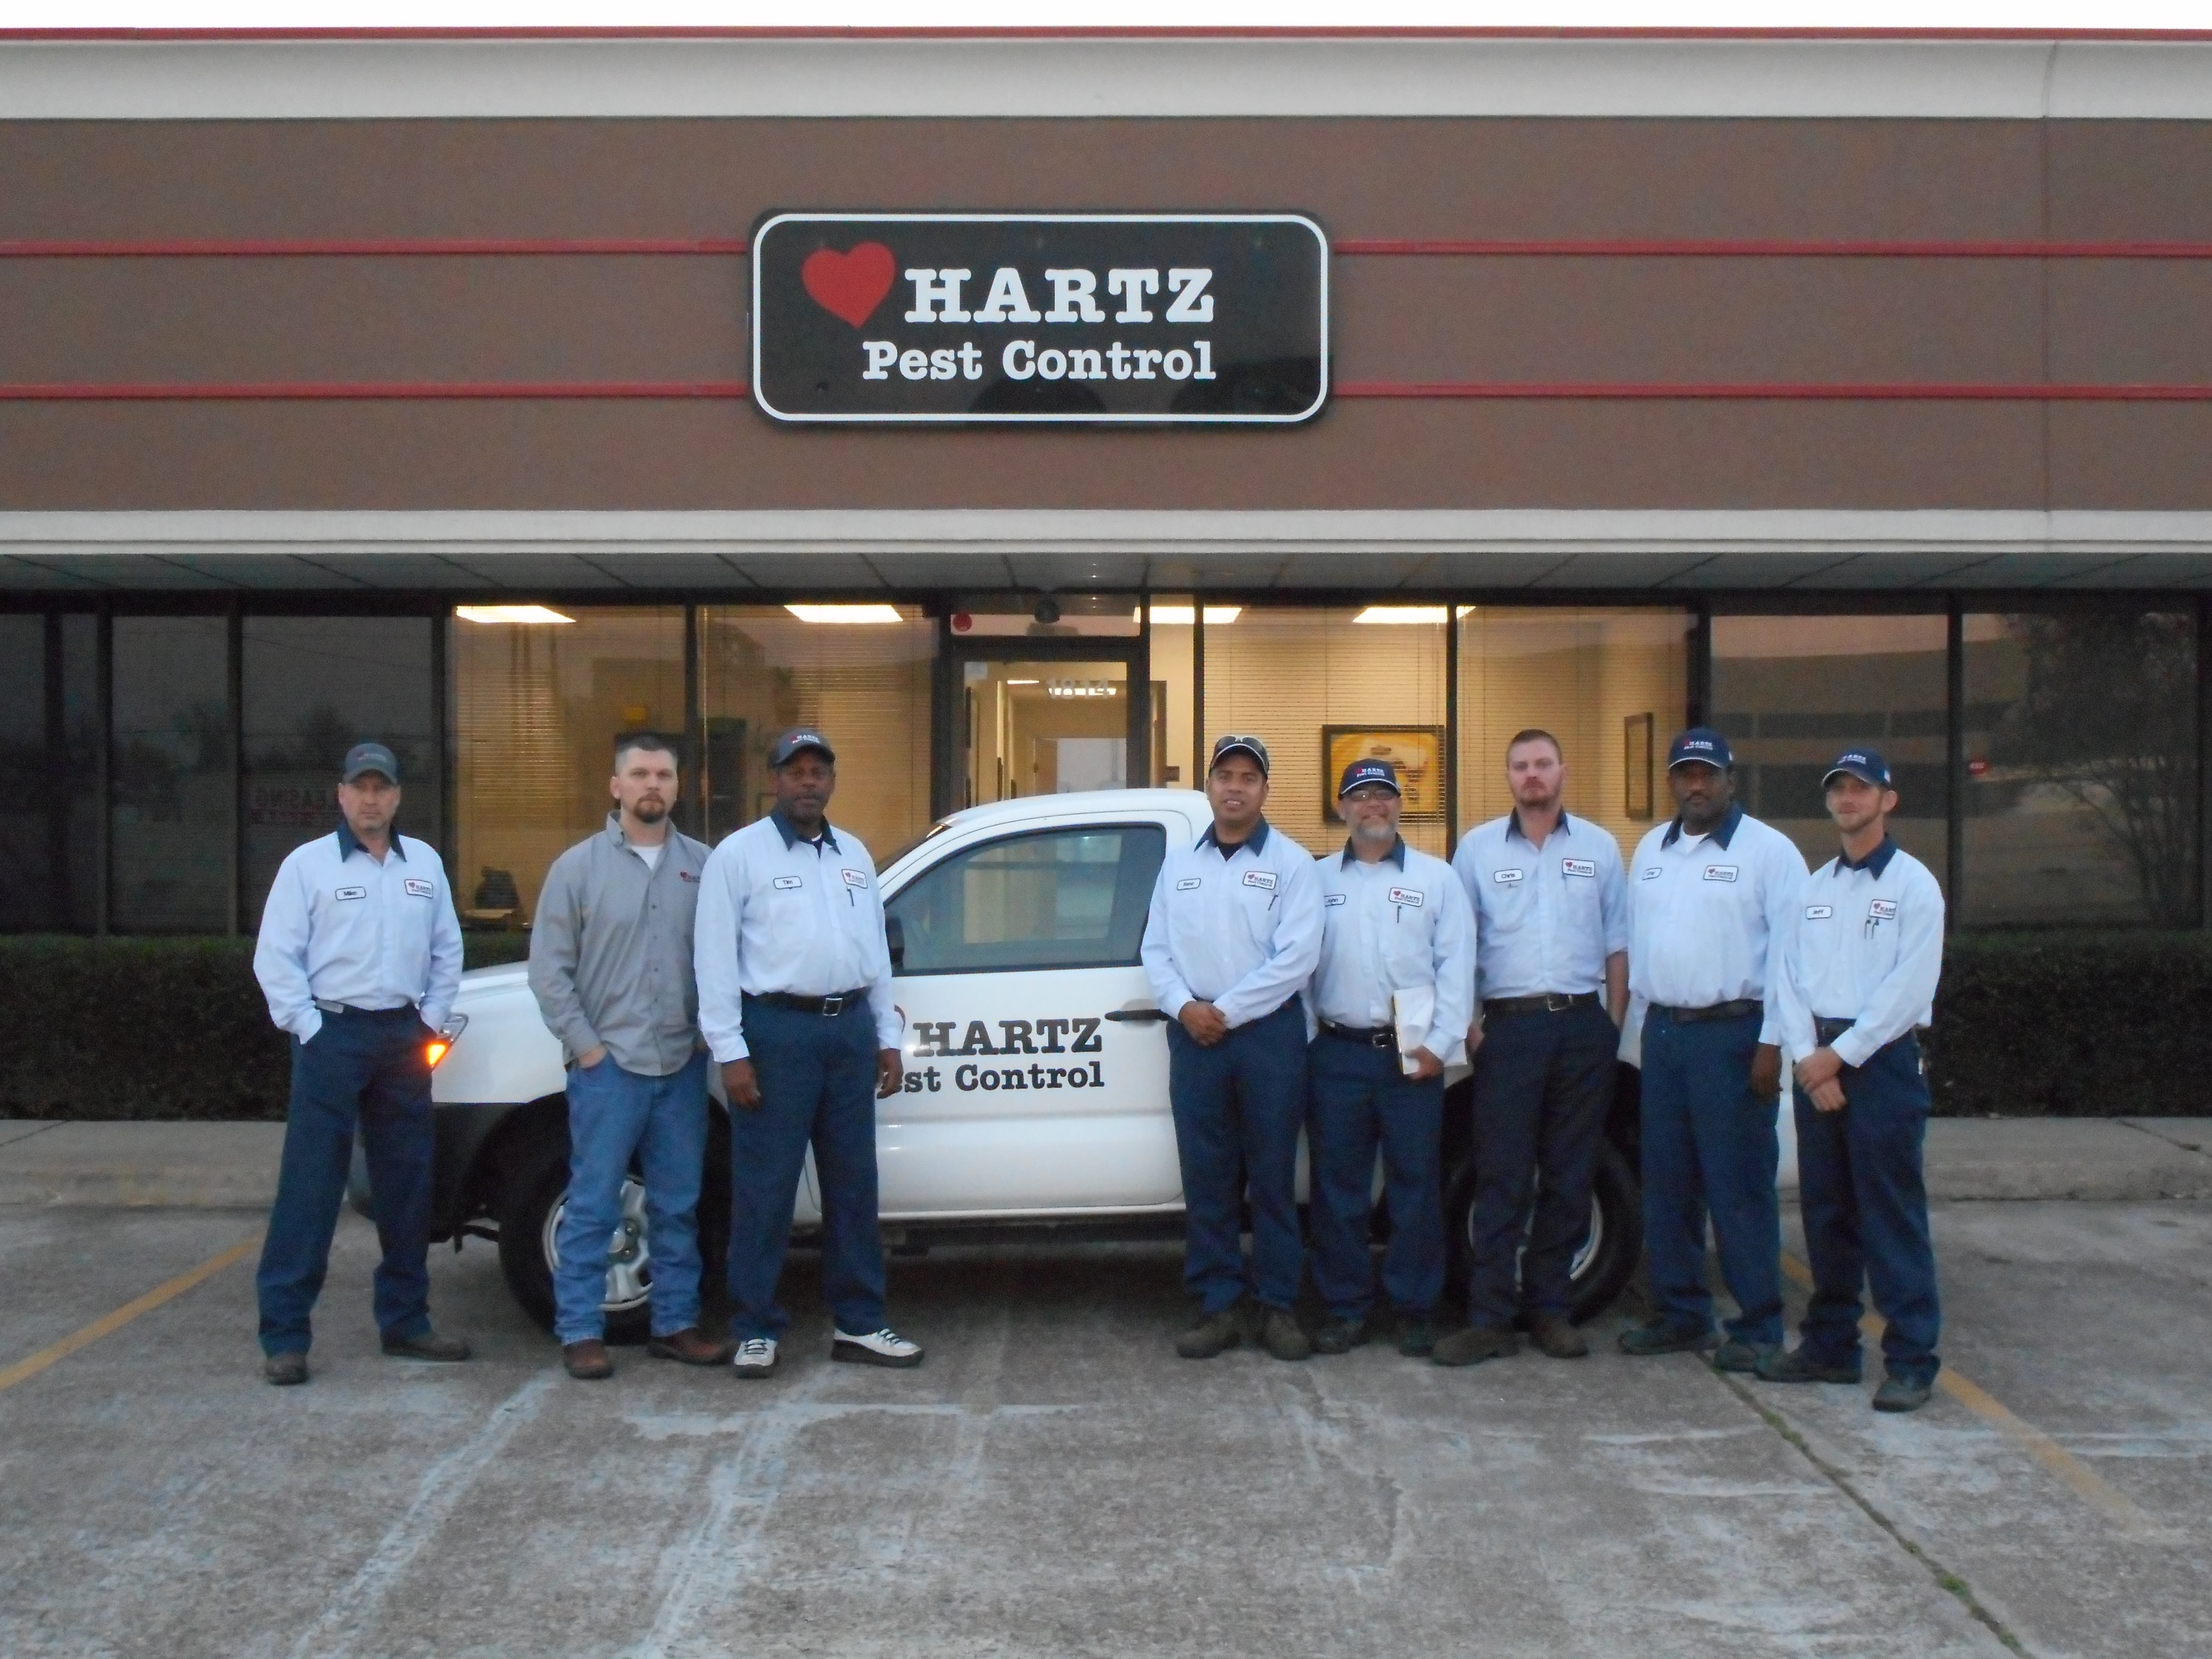 Hartz Technicians Pose For A Group Picture In Katy Texas